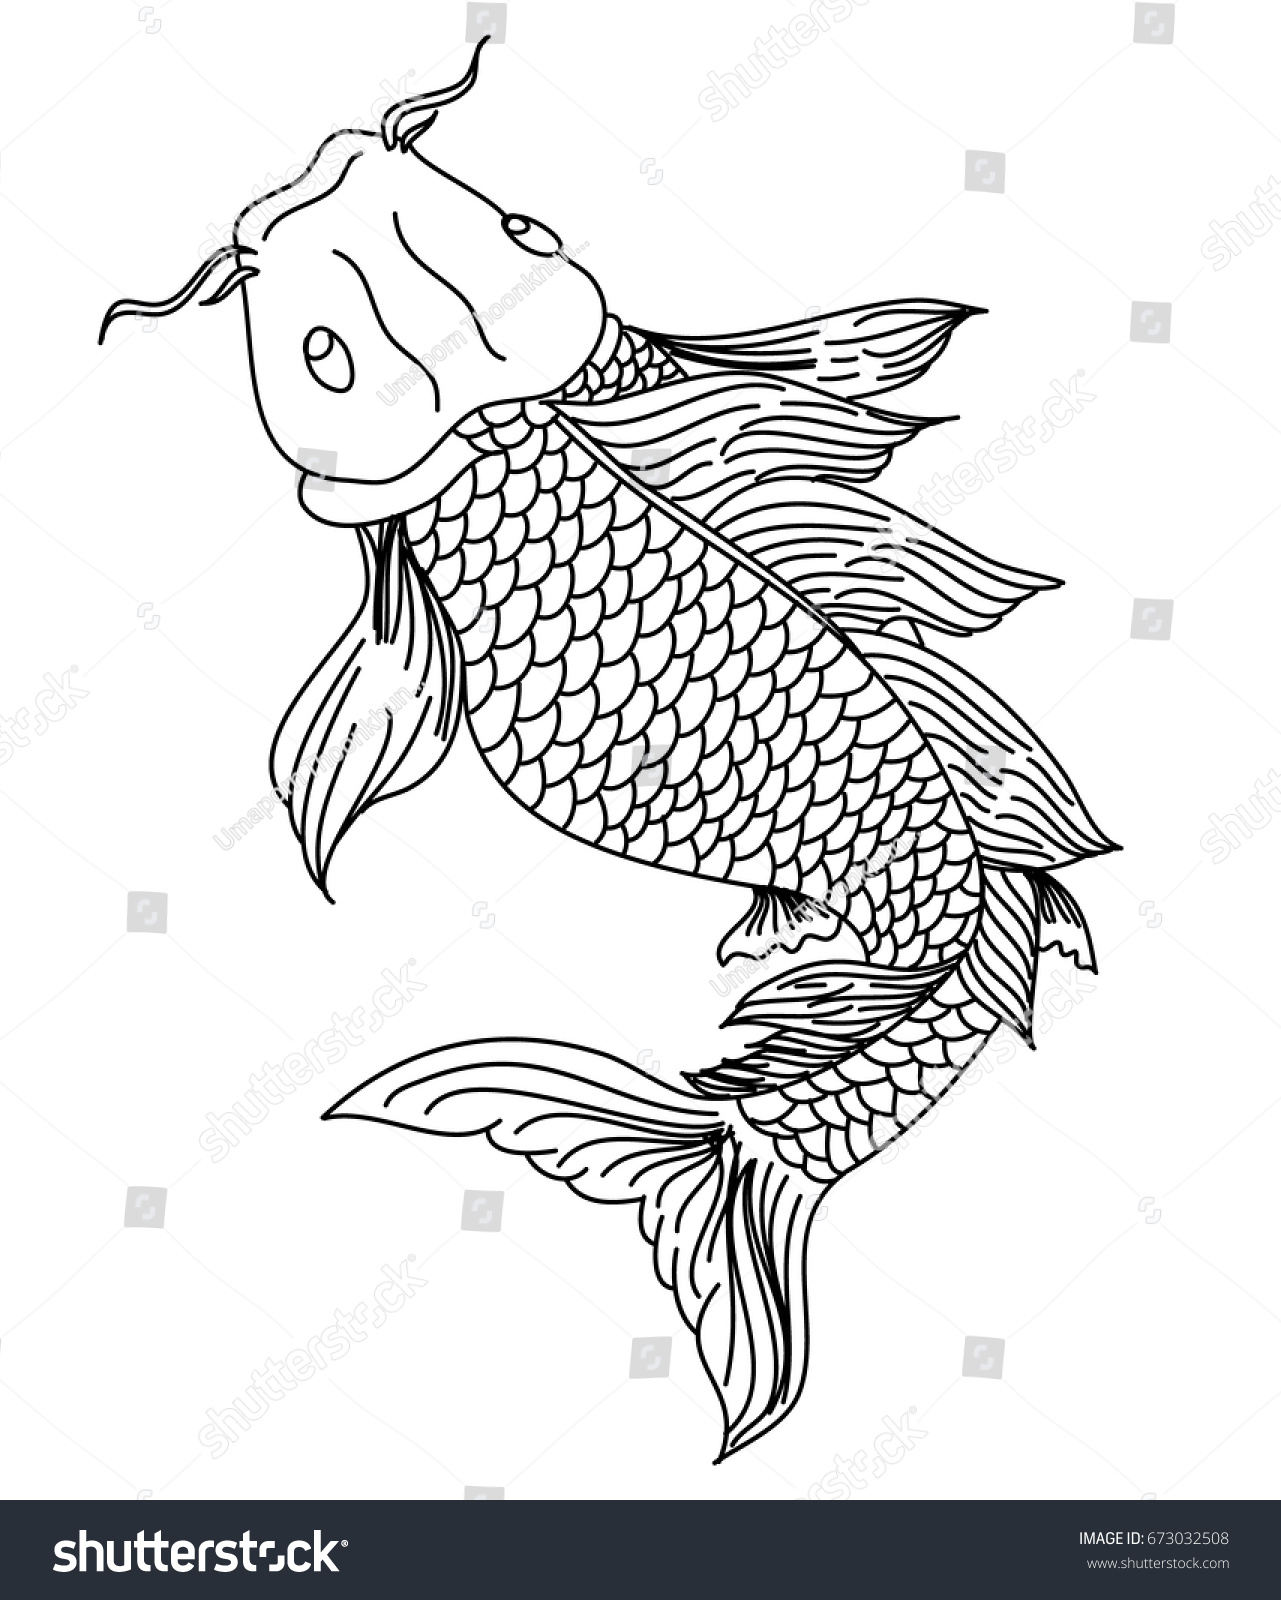 hand drawn line art fish koi stock vector 673032508 shutterstock